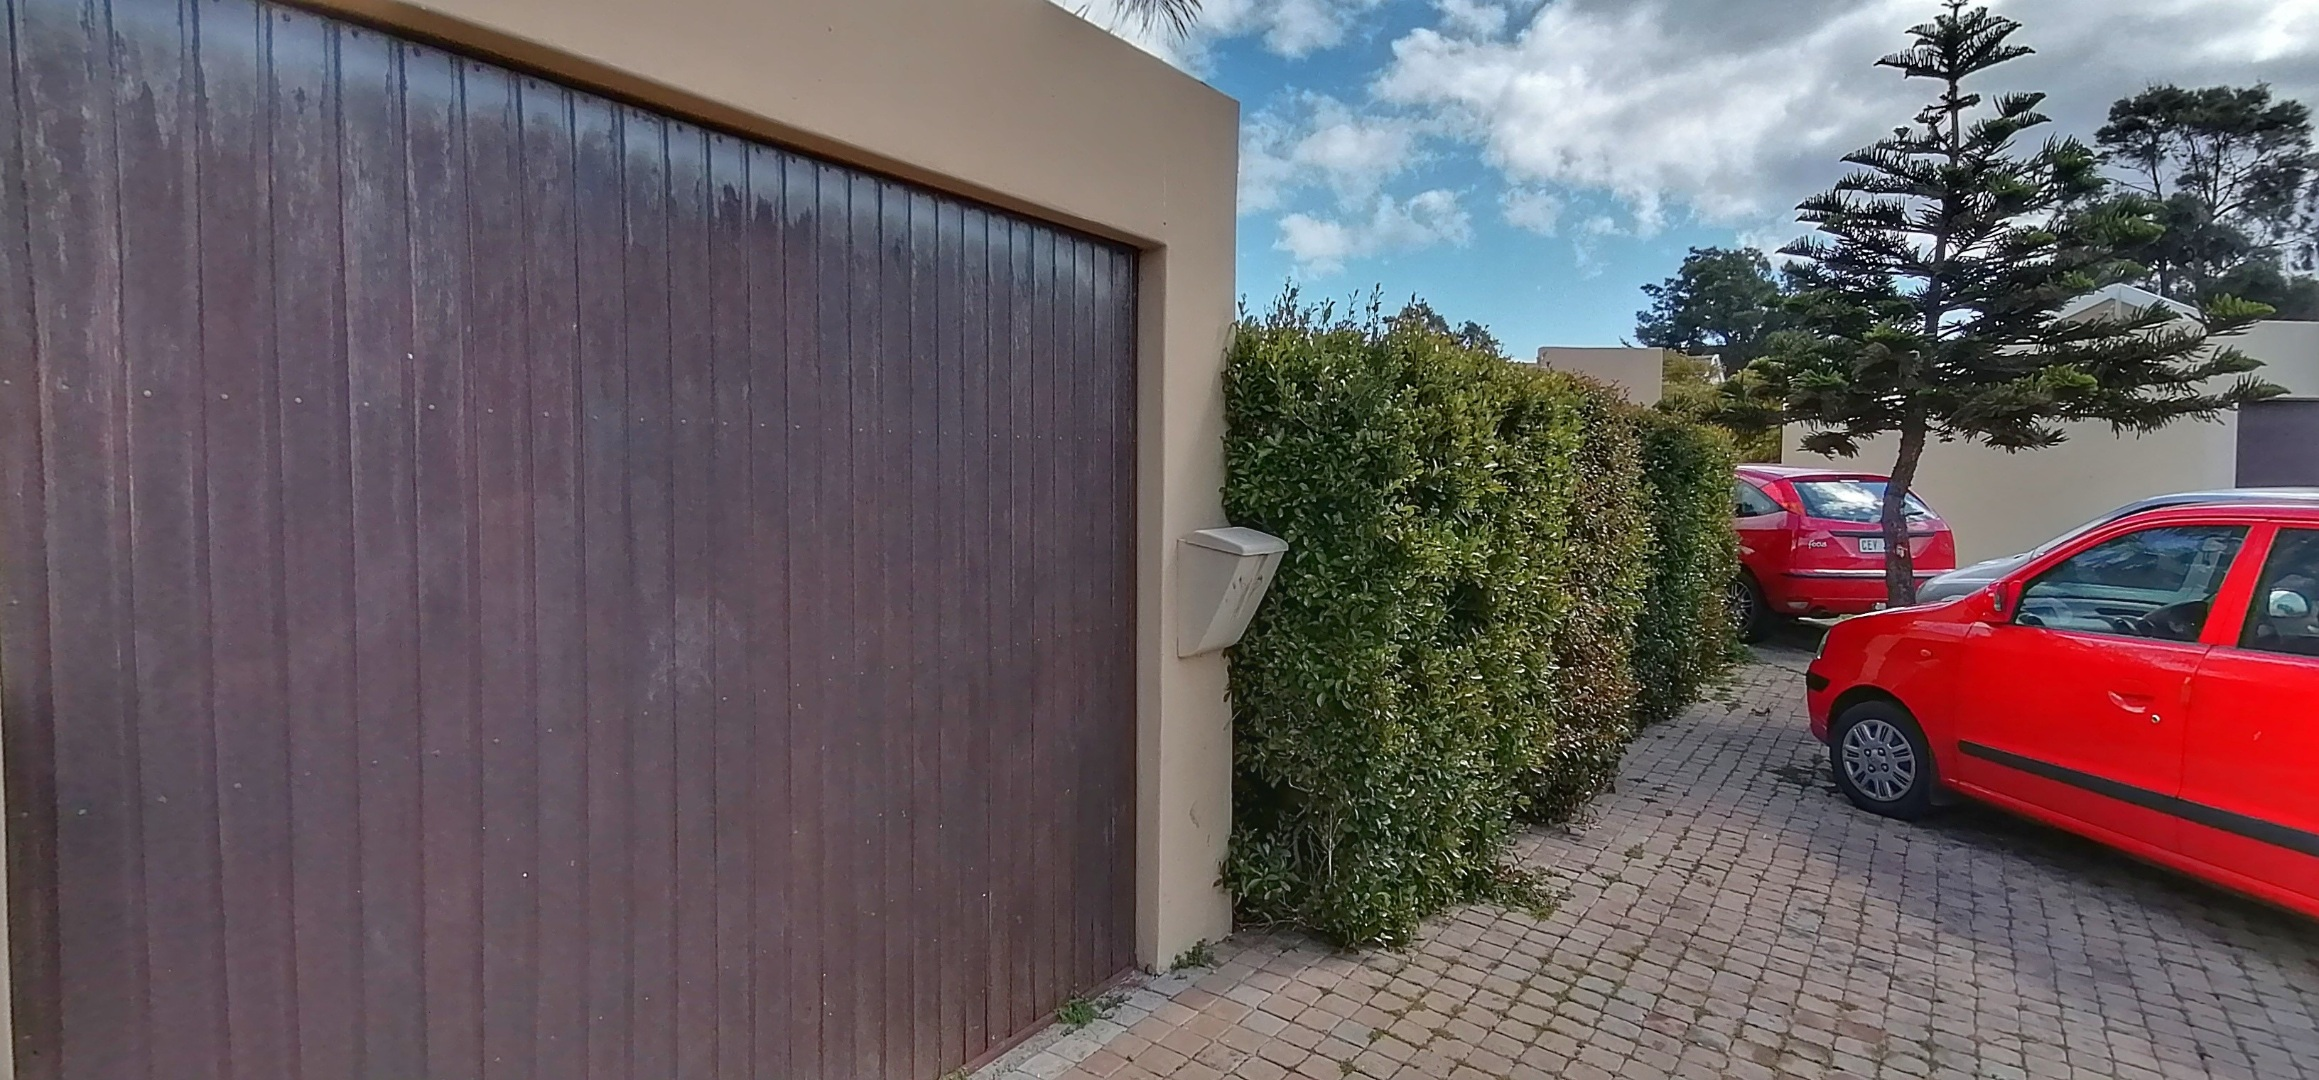 3 Bedroom House For Sale in Fairview Golf Estate